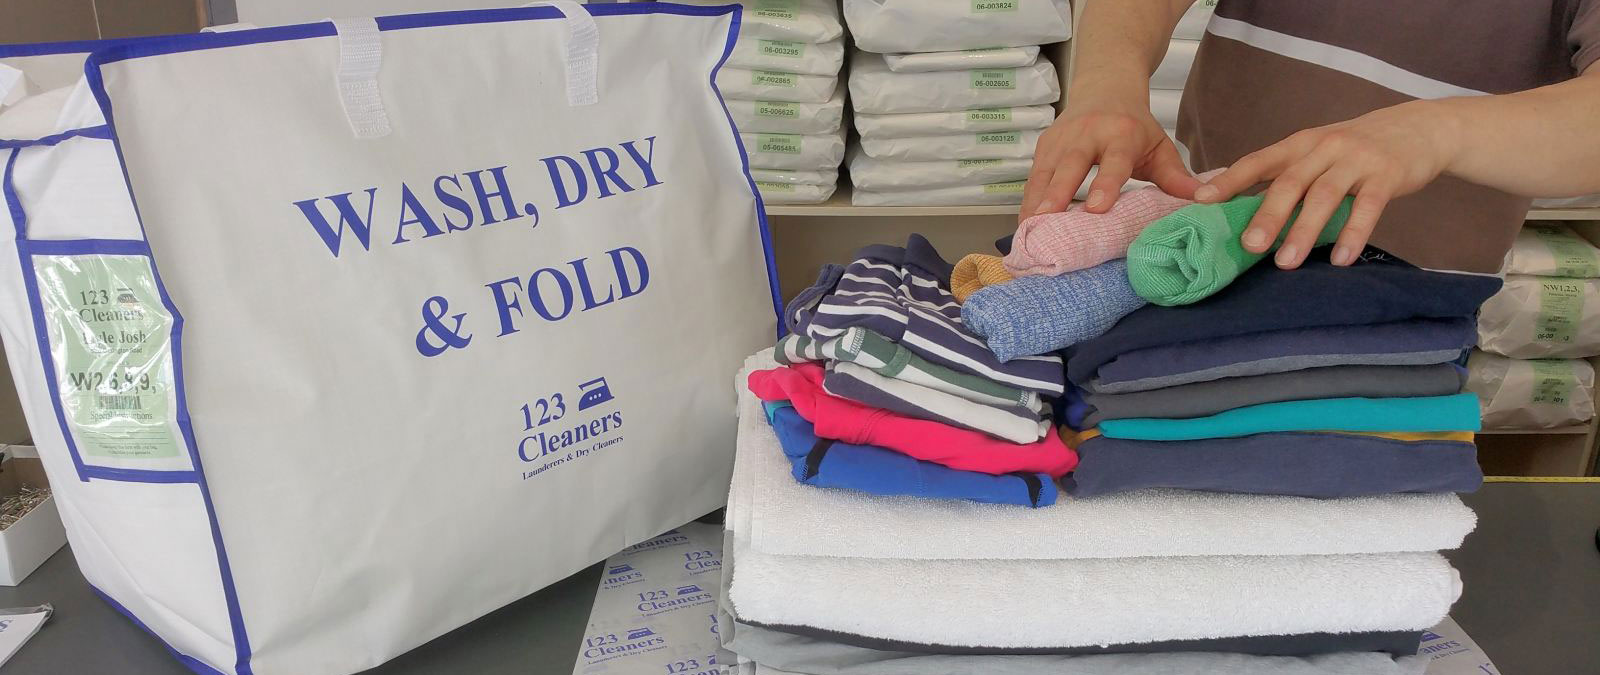 Wash, Dry & Fold Services from 123 Cleaners